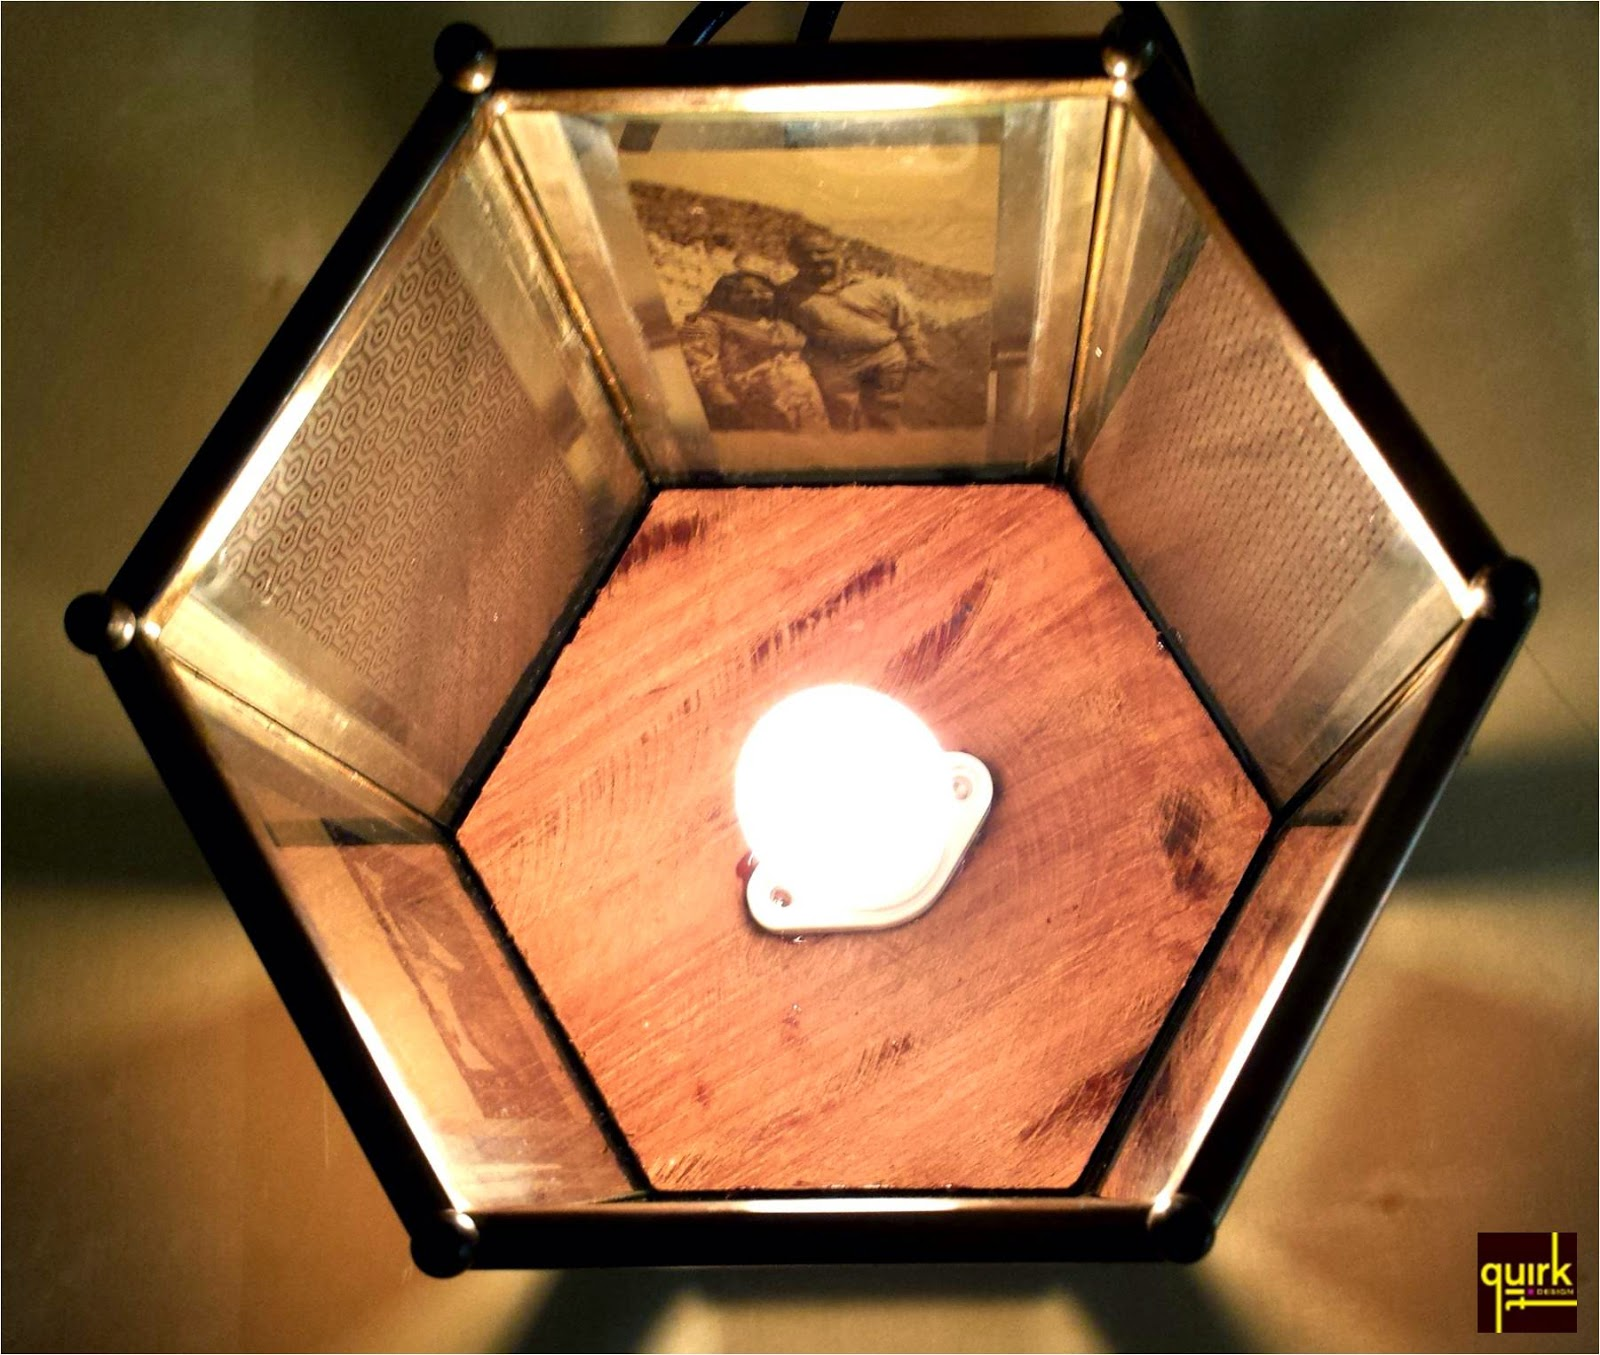 Quirk It Design__Brass_glass_picture-photo_hexagon lamp_DIY_Quirky_Home_Decor